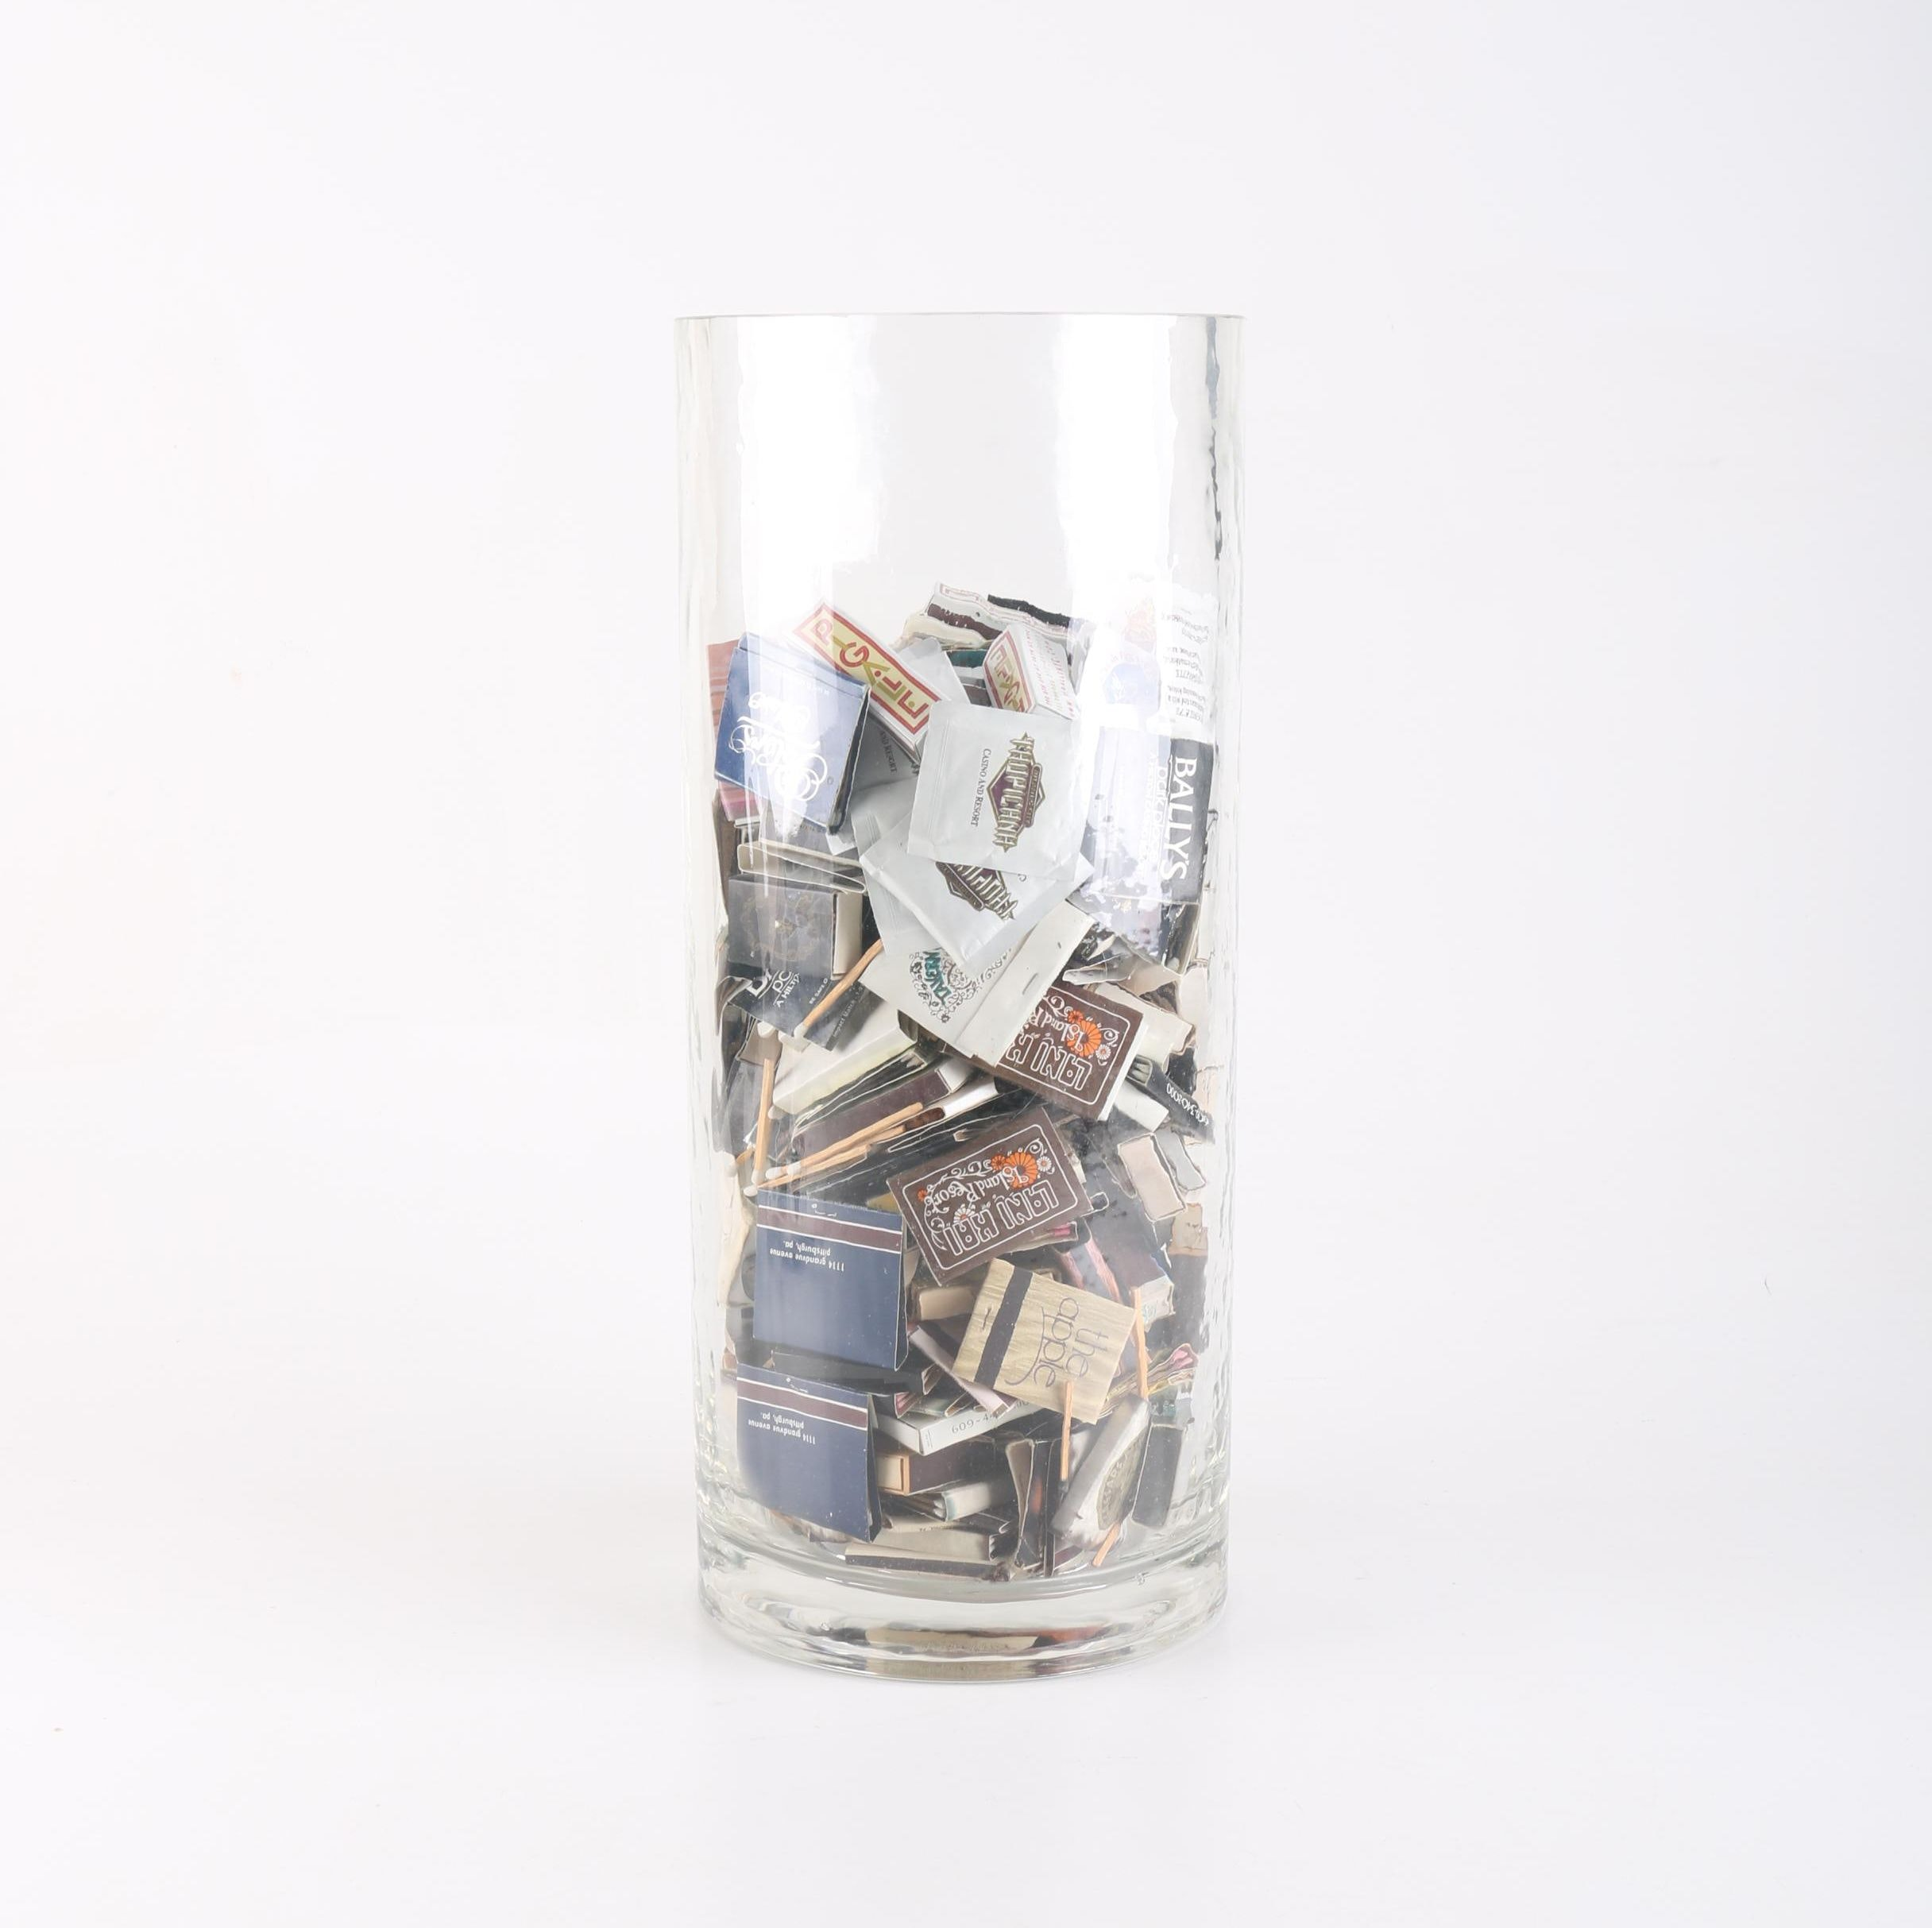 Glass Vessel Full of Collectible Matchbooks